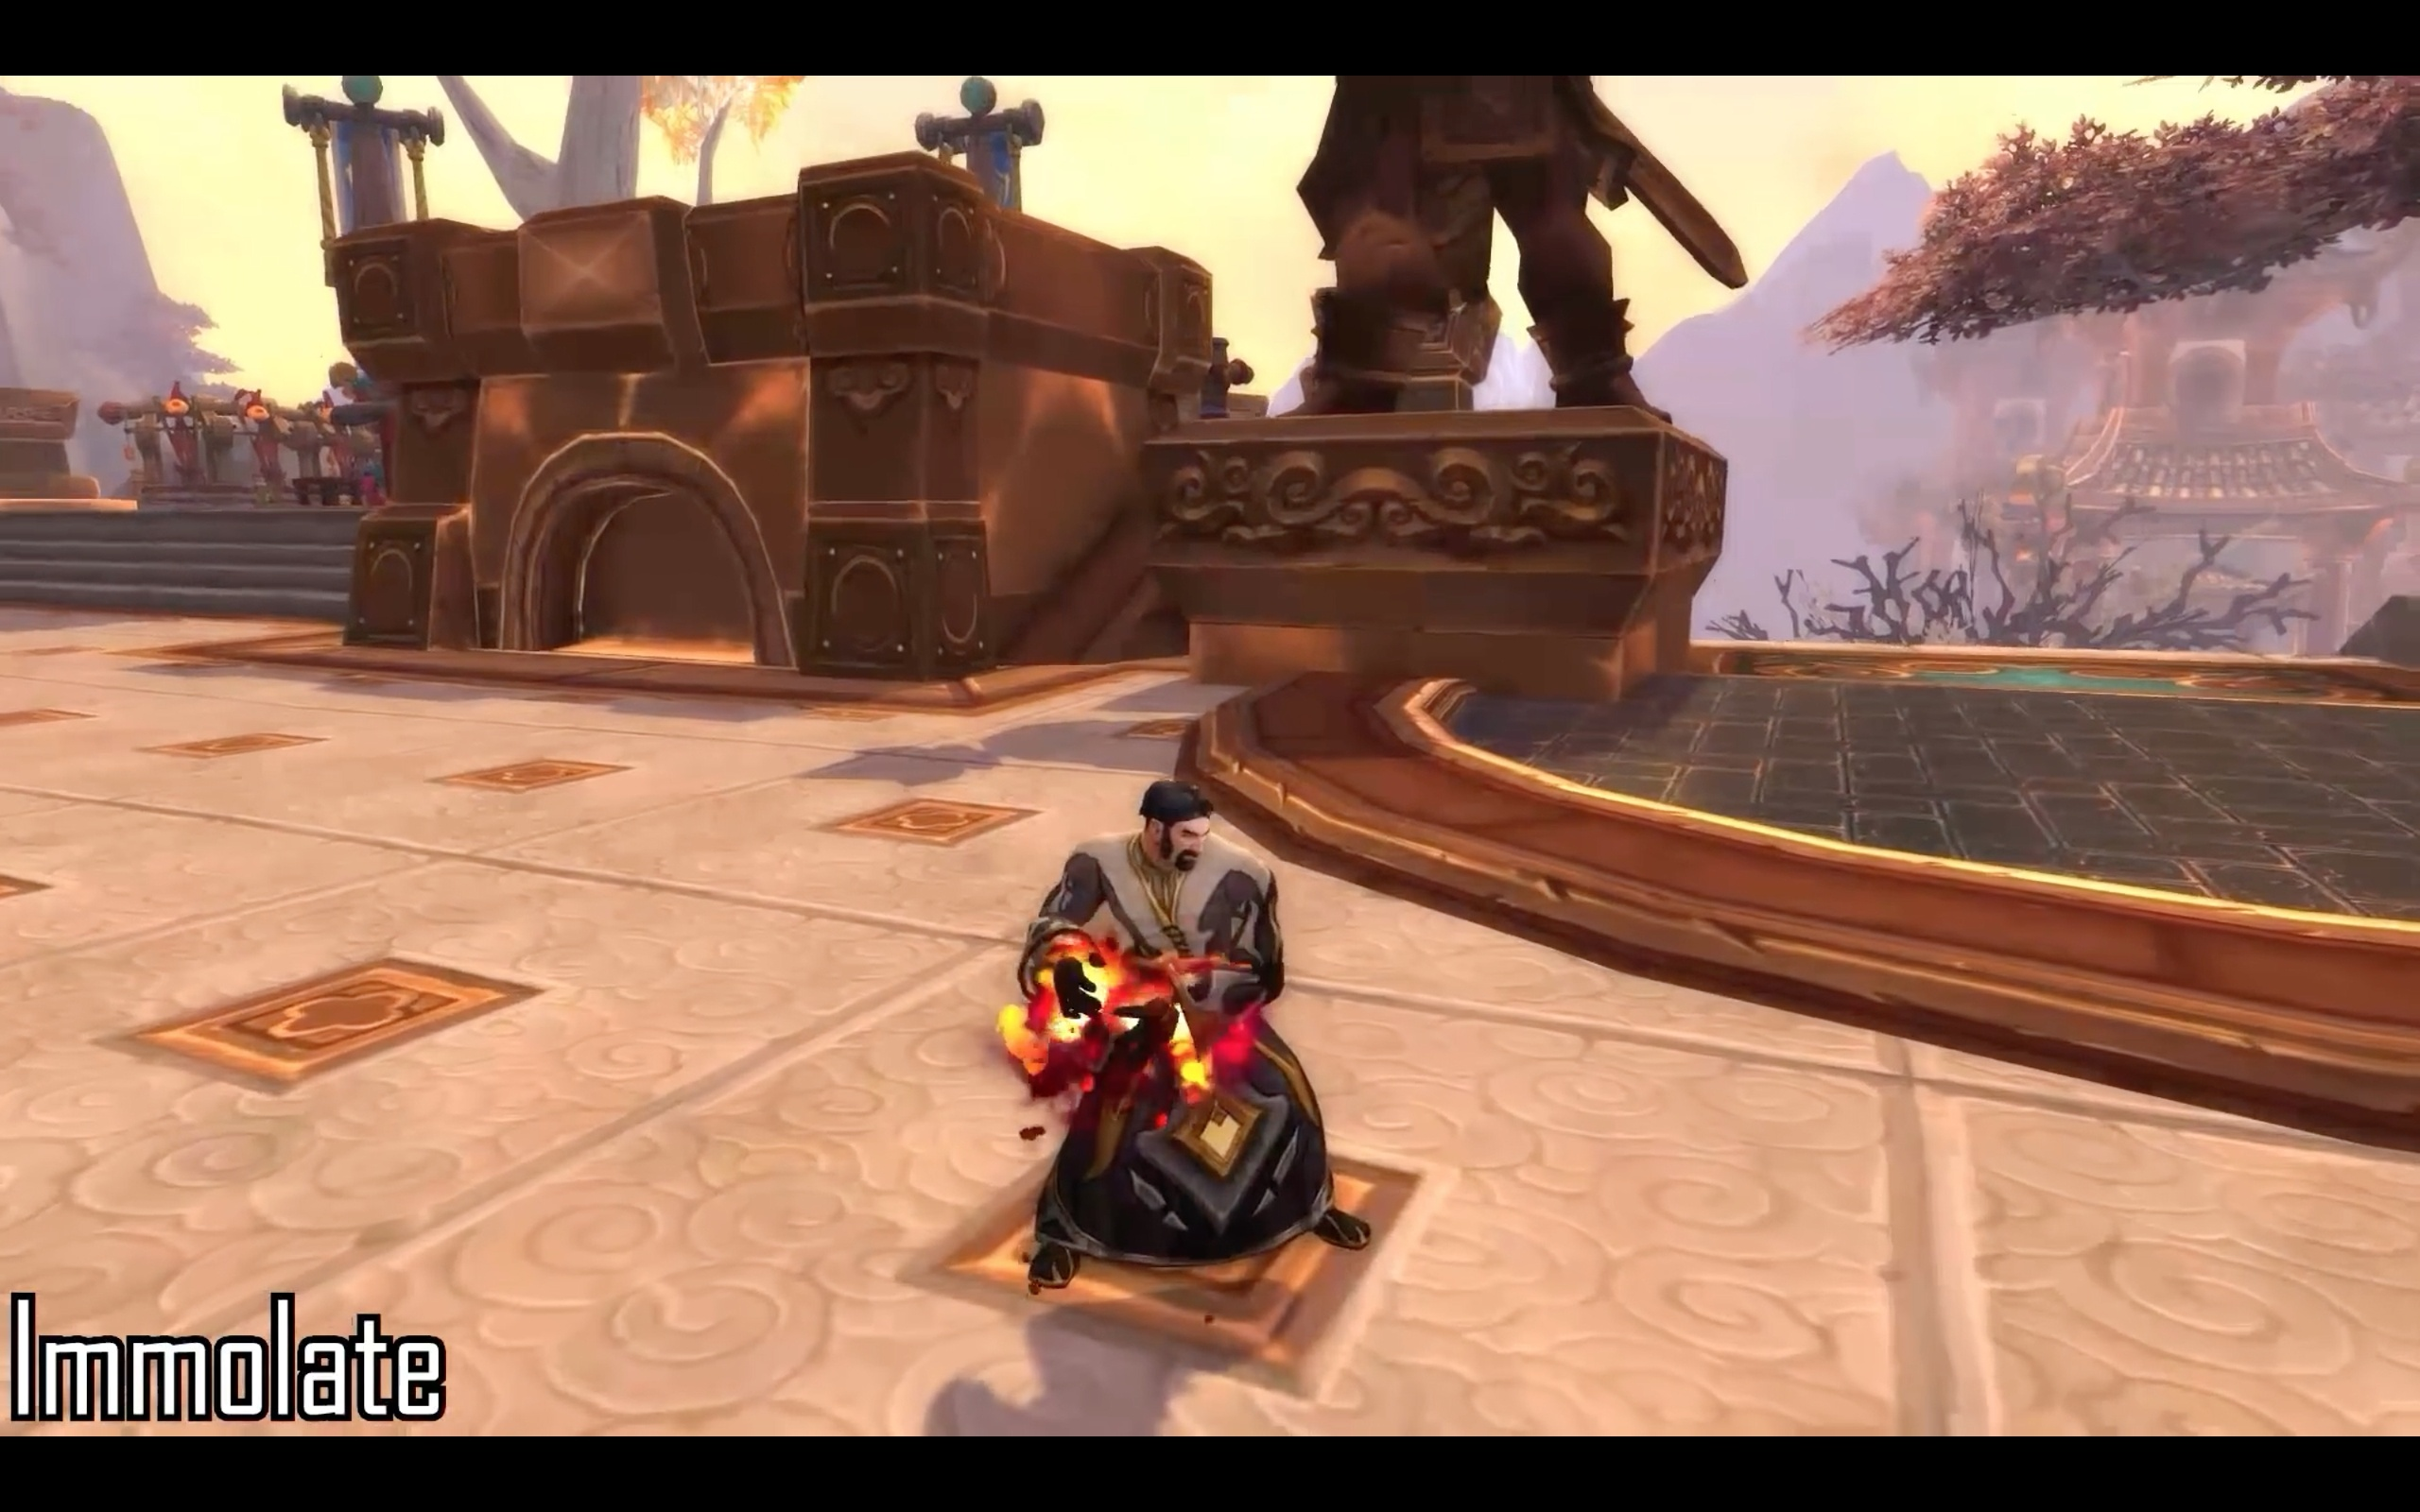 Battle for Azeroth Affliction Warlock Changes - Guides - Wowhead